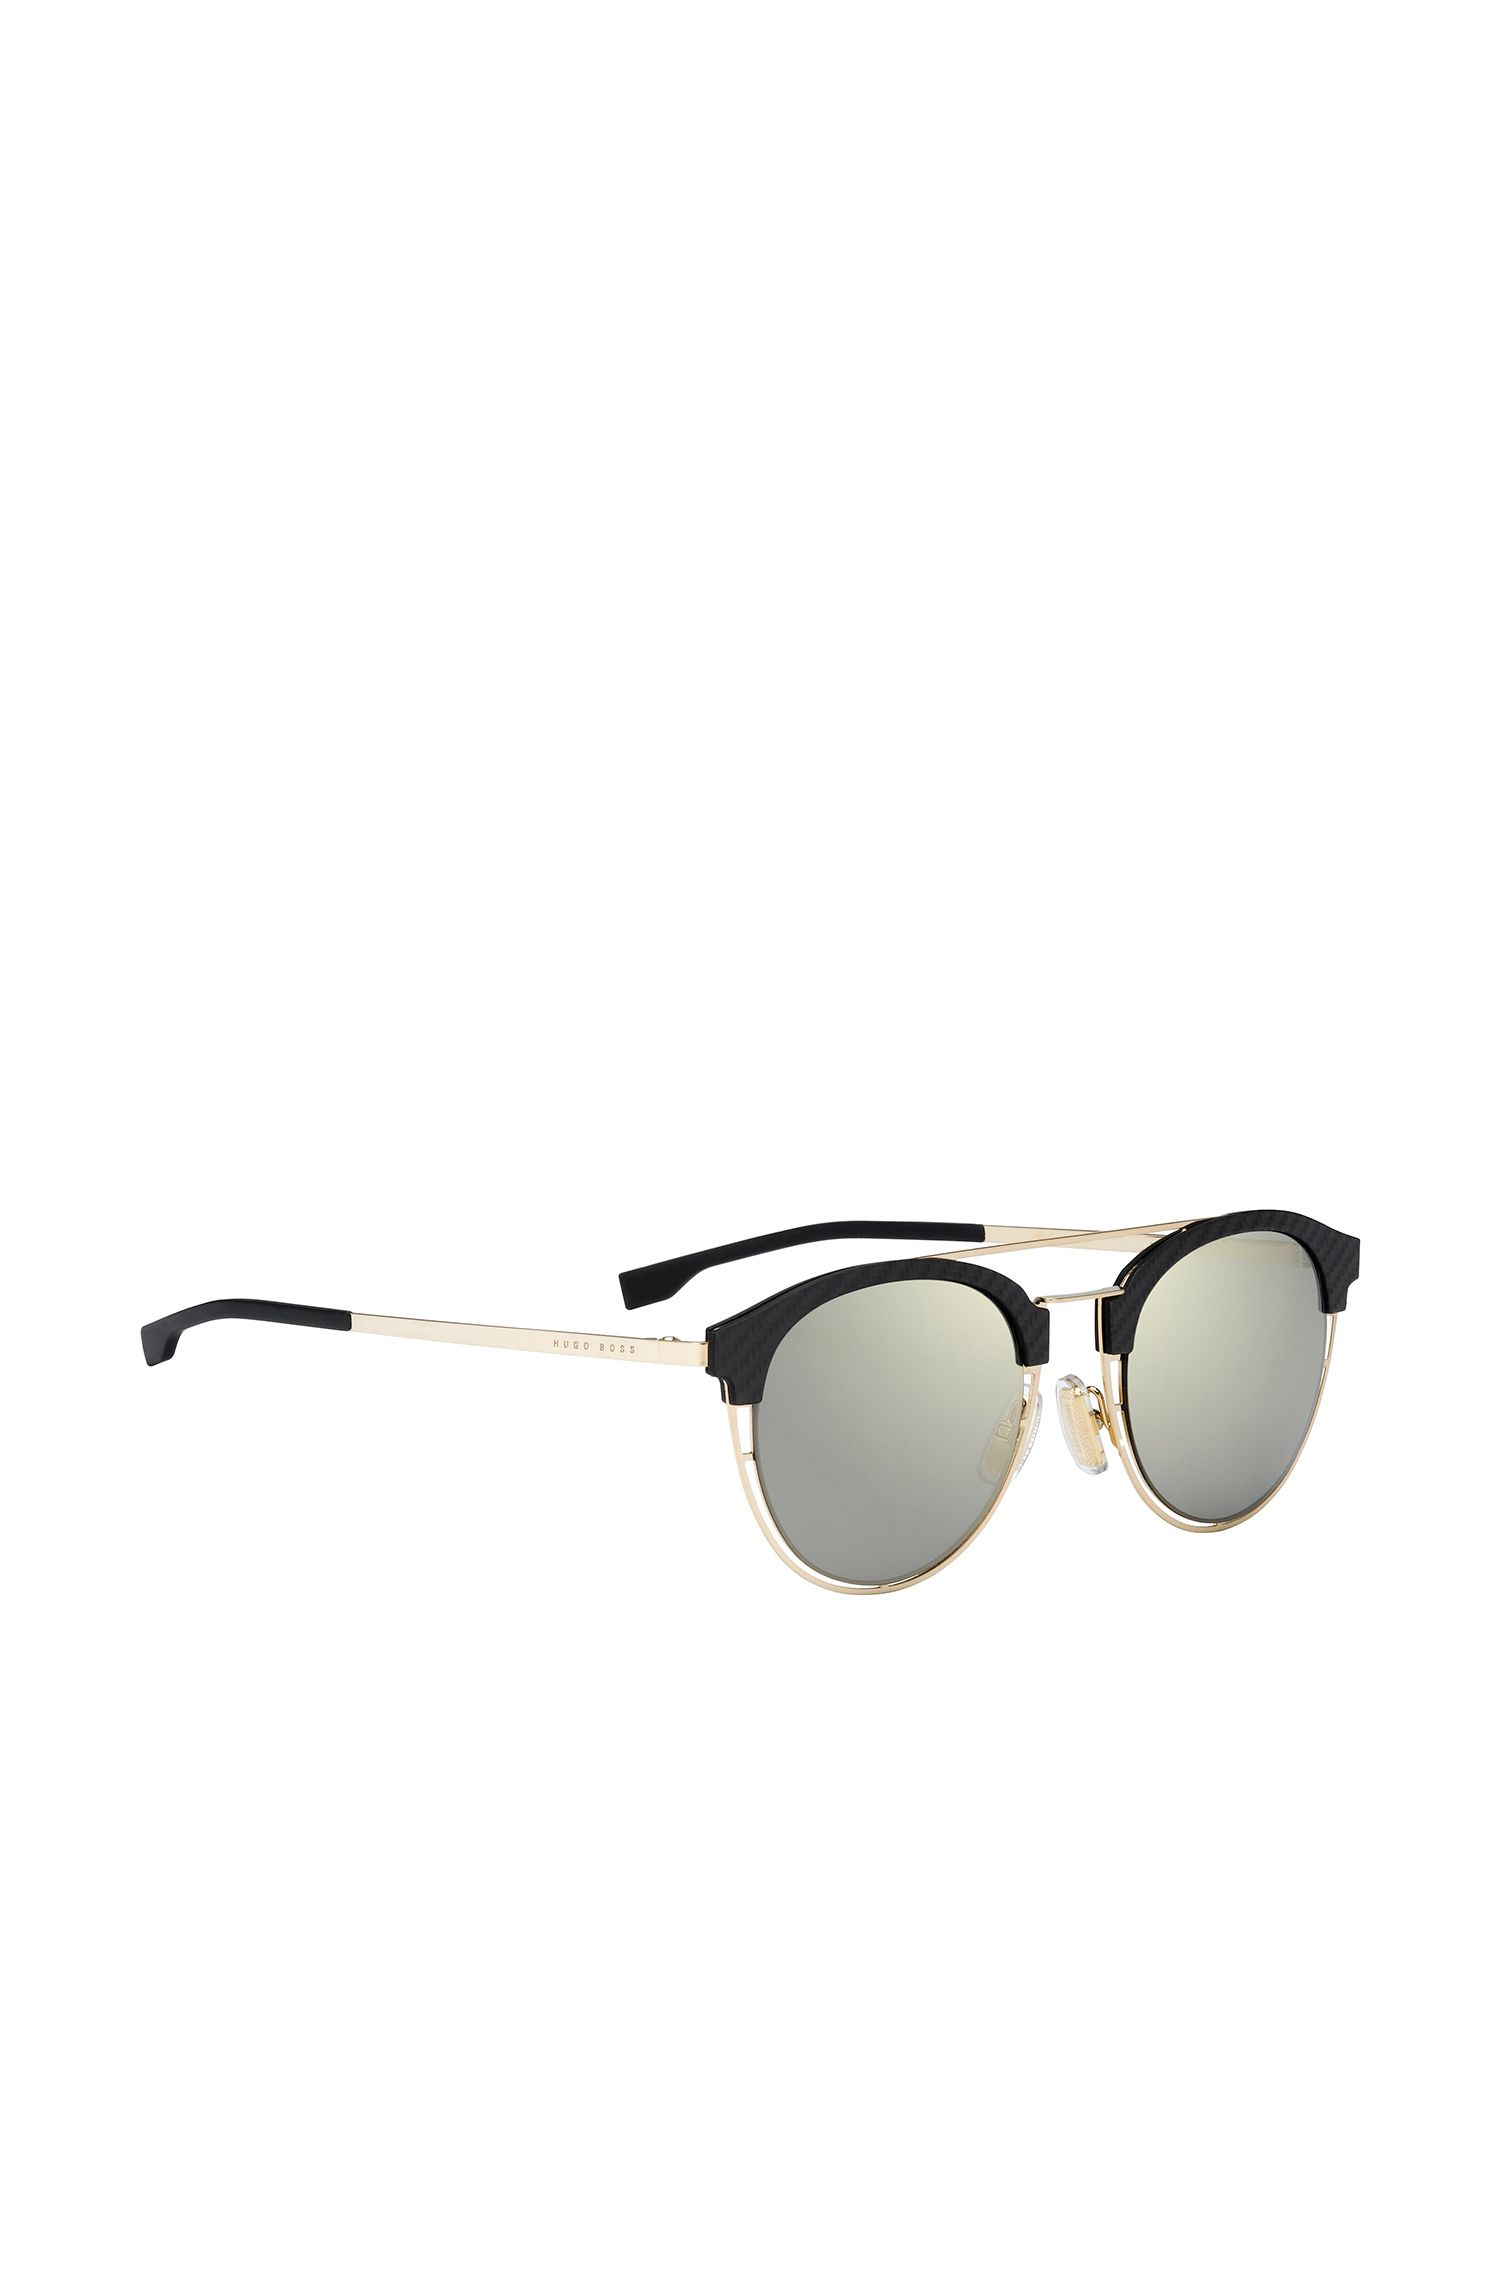 'BOSS 0784S' | Grey Bronze Lens Clubmaster Sunglasses